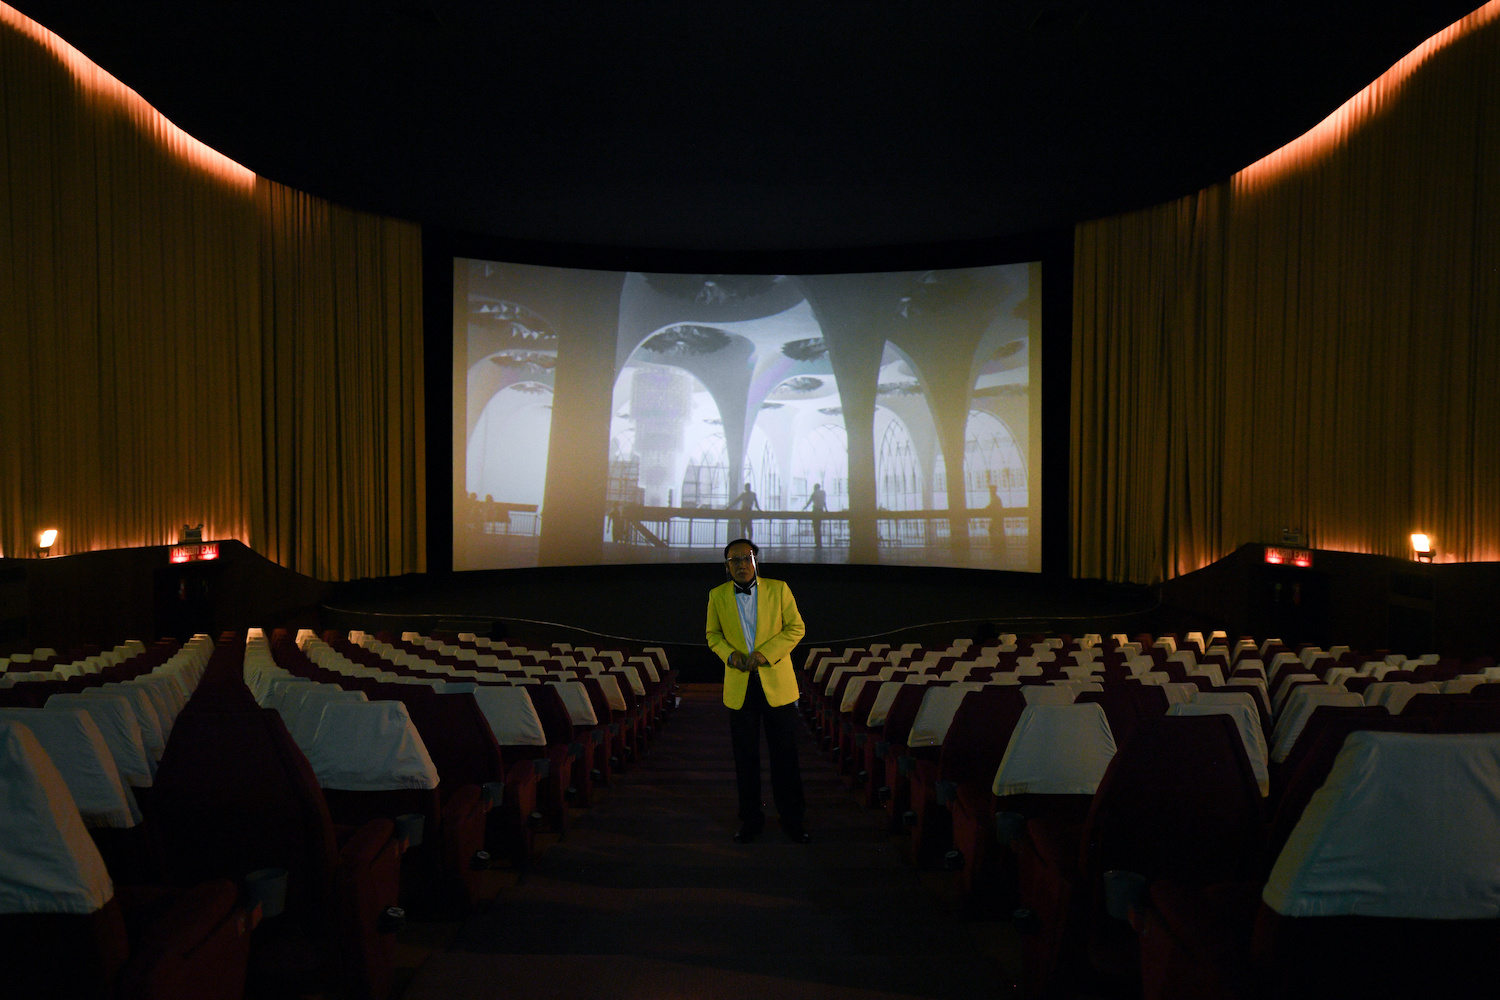 A nattily attired cinephile surveys the cinema on Saturday as the Scala counts down to its final curtain. (Reuters/Chalinee Thirasupa)